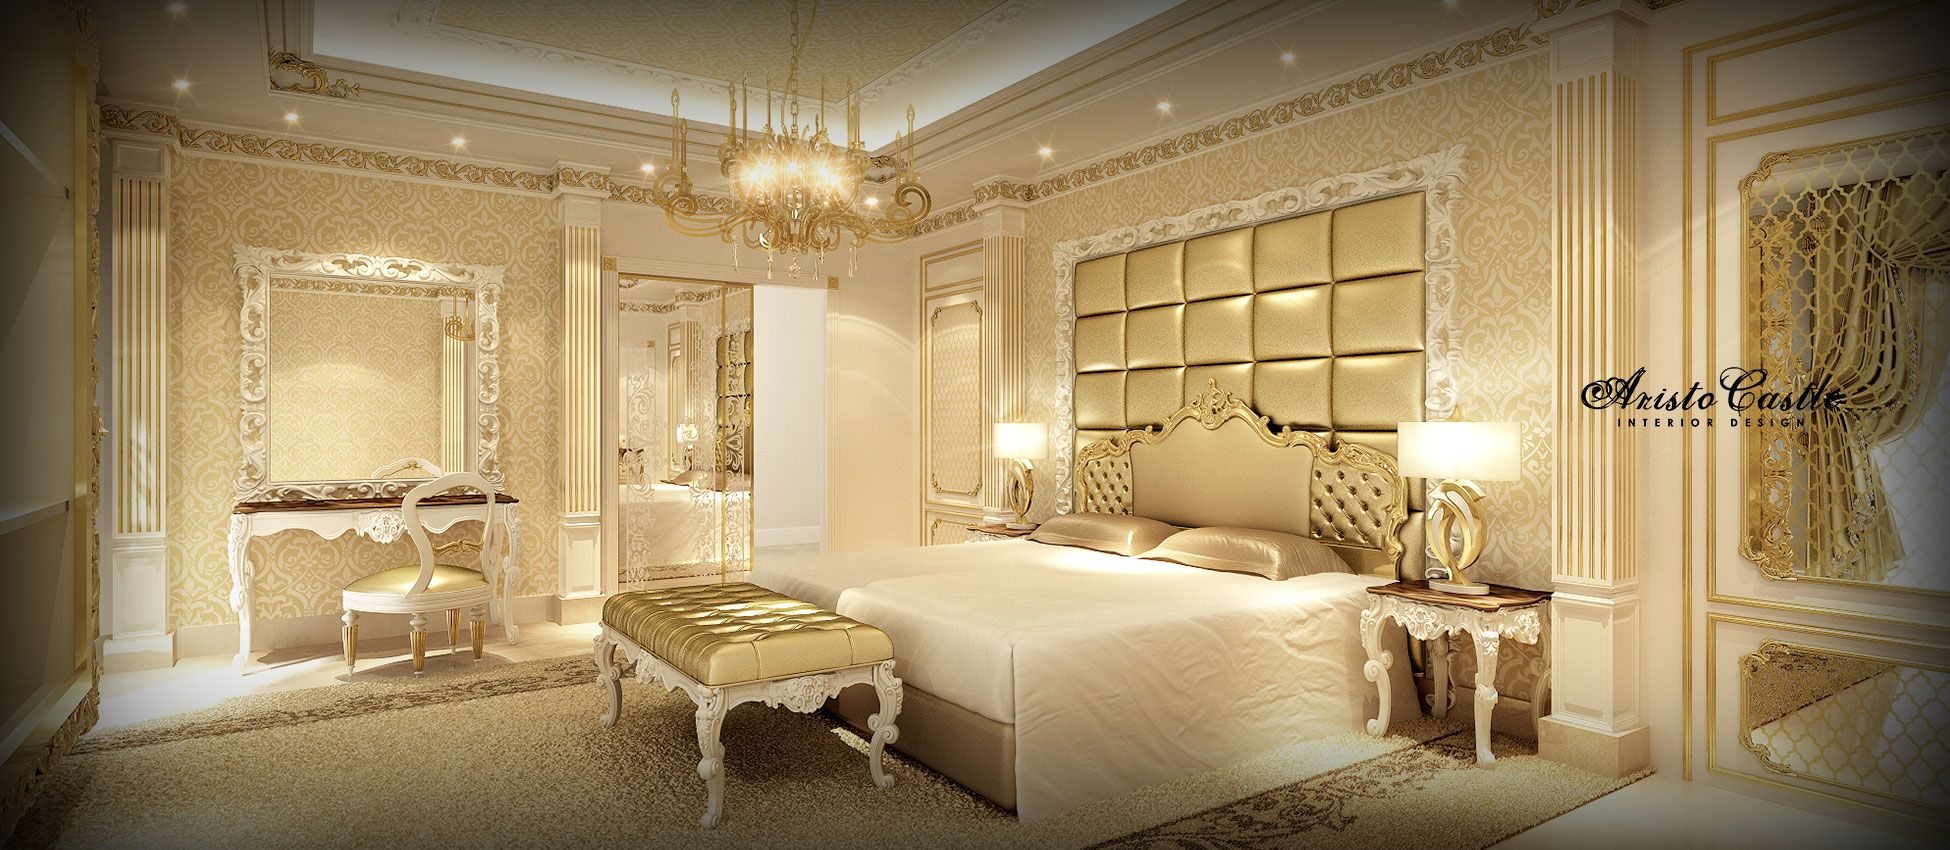 dubai luxury interior design luxury master bedroom. Black Bedroom Furniture Sets. Home Design Ideas